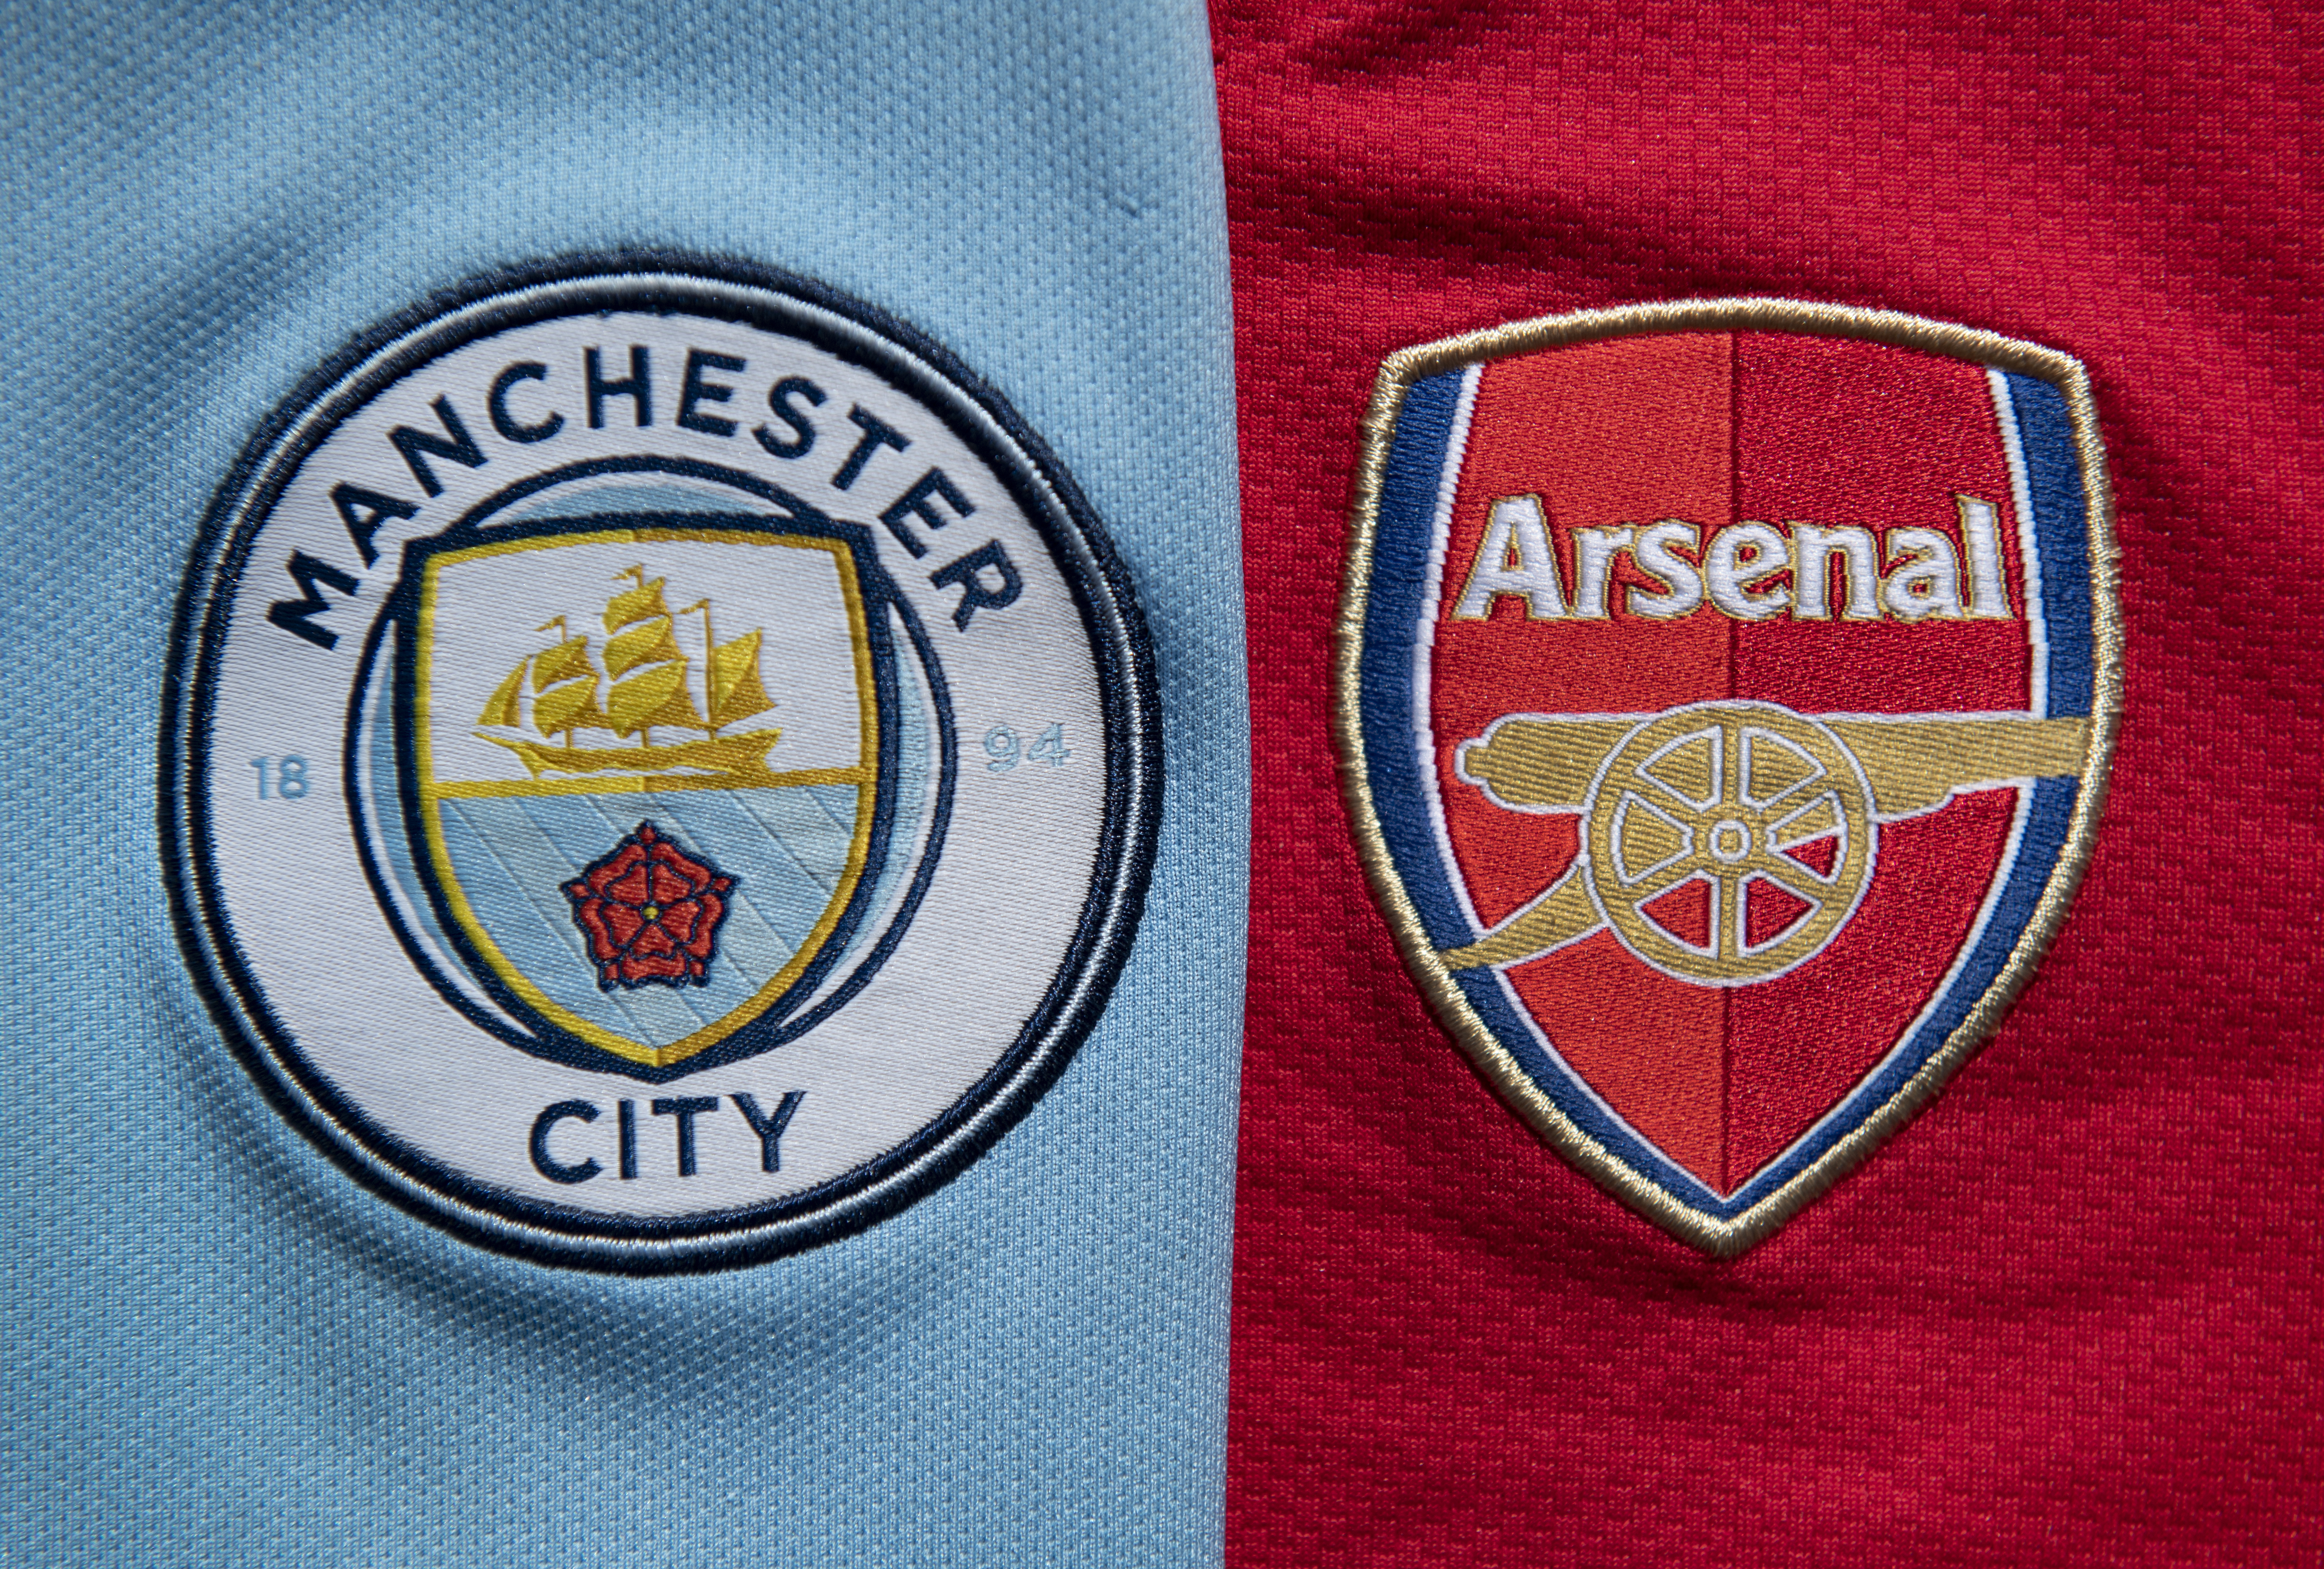 Manchester City and Arsenal Club Crests